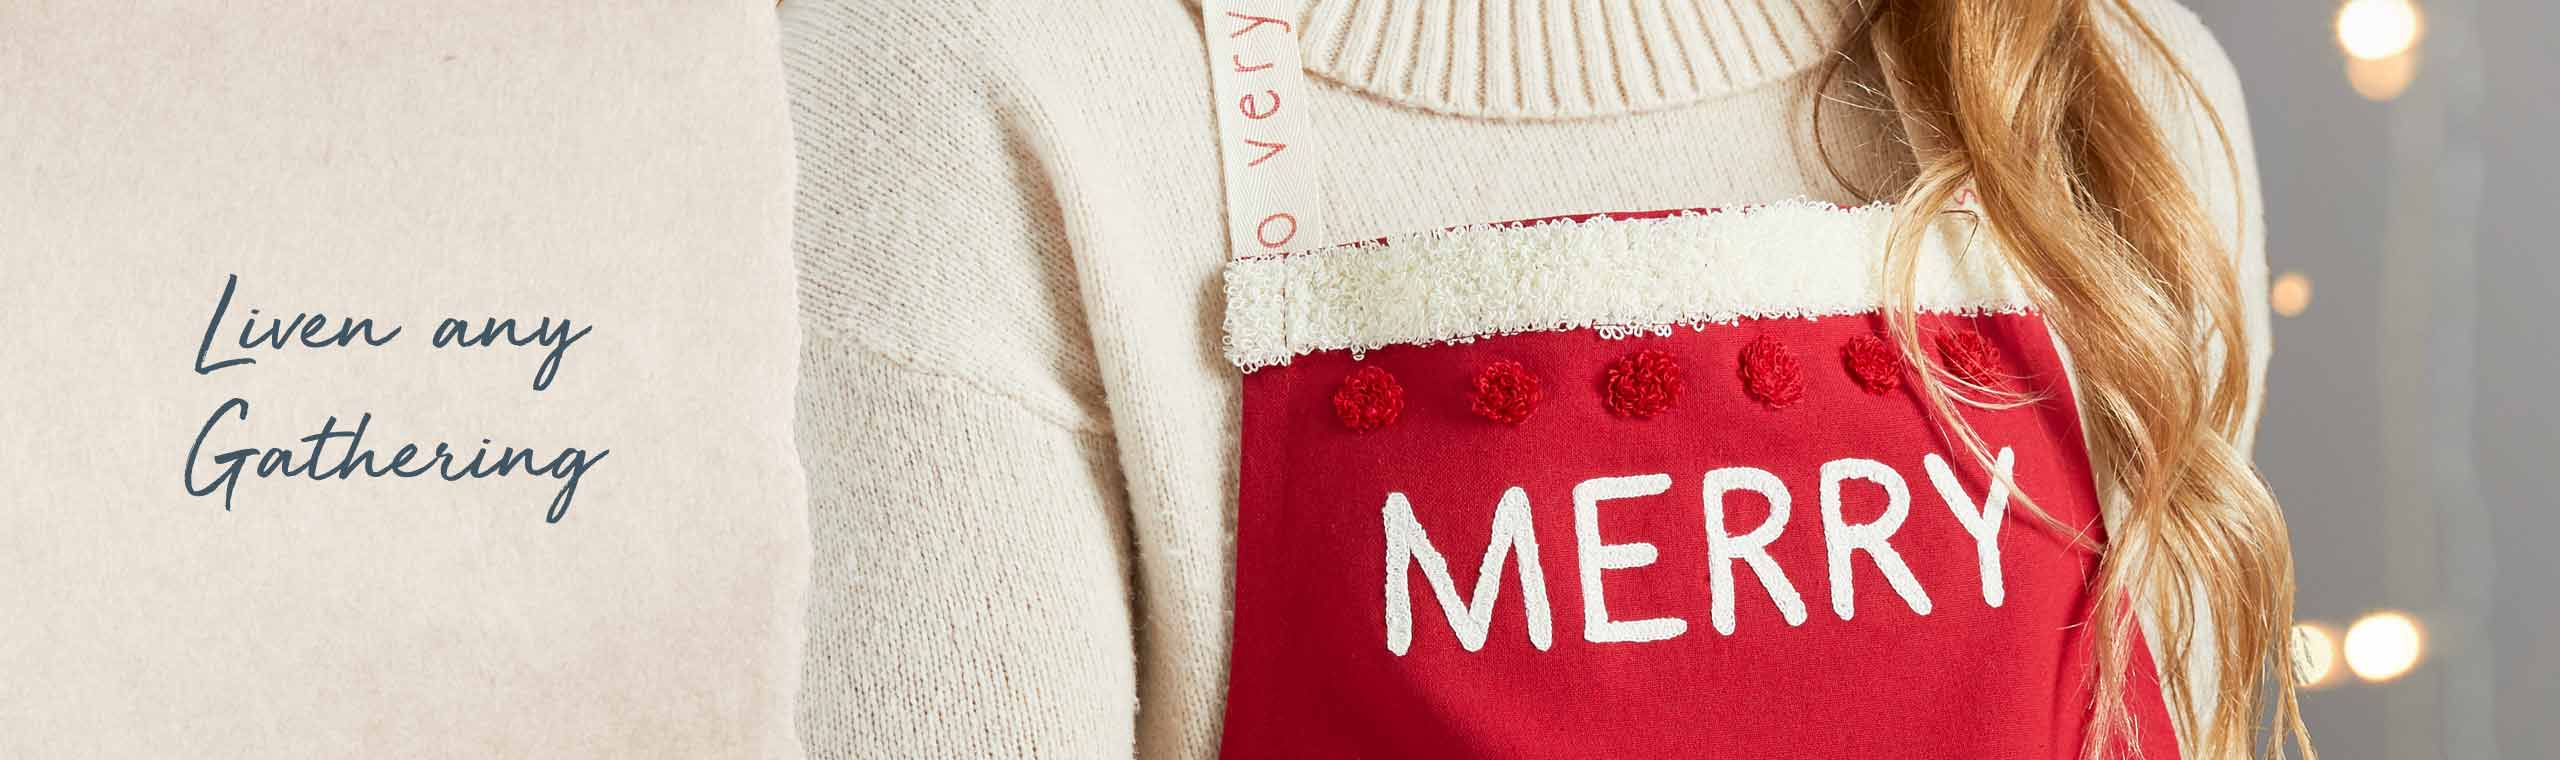 Liven any gathering. Woman wearing a red apron embroidered with the word MERRY